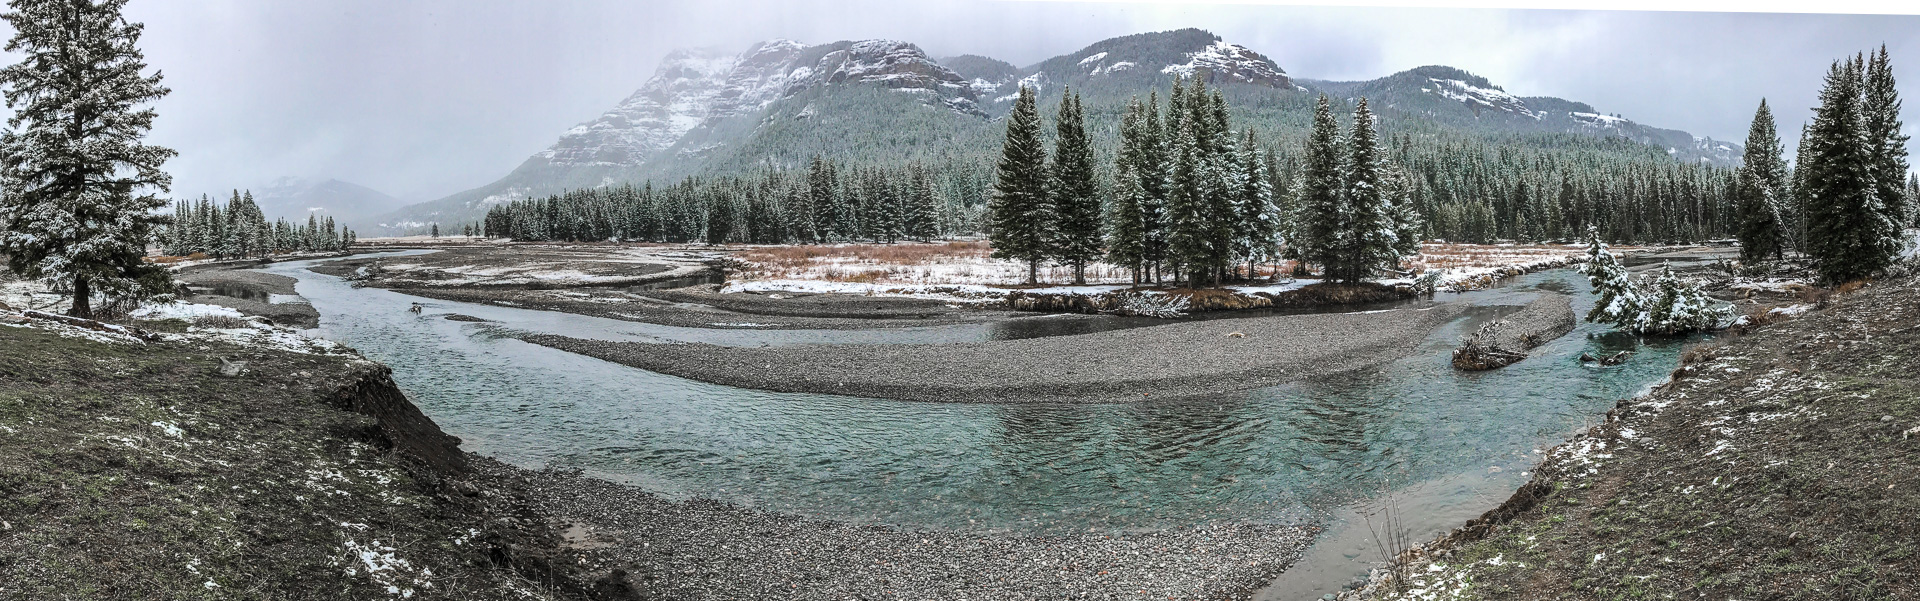 Landscape Lamar River iPhone panorama Yellowstone National Park WY -6402